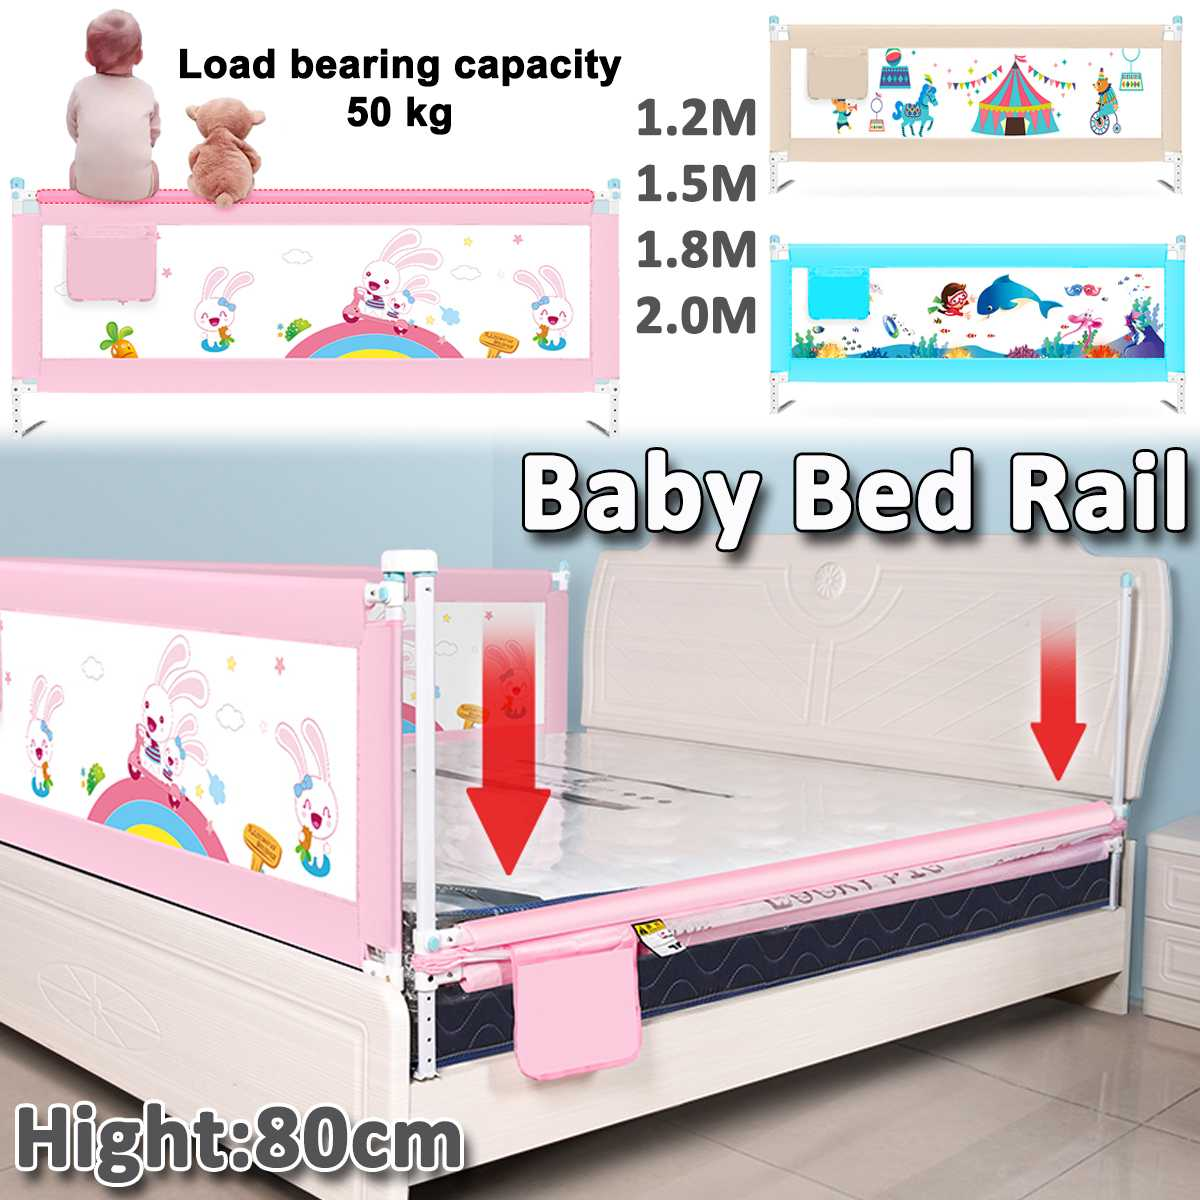 1.2M/1.5M/1.8M/2M Kid Bedguard Toddler Safety Bed Rail Guard Rail Folding Sleep Kids Playen Safety Gate For Baby Safe Guard